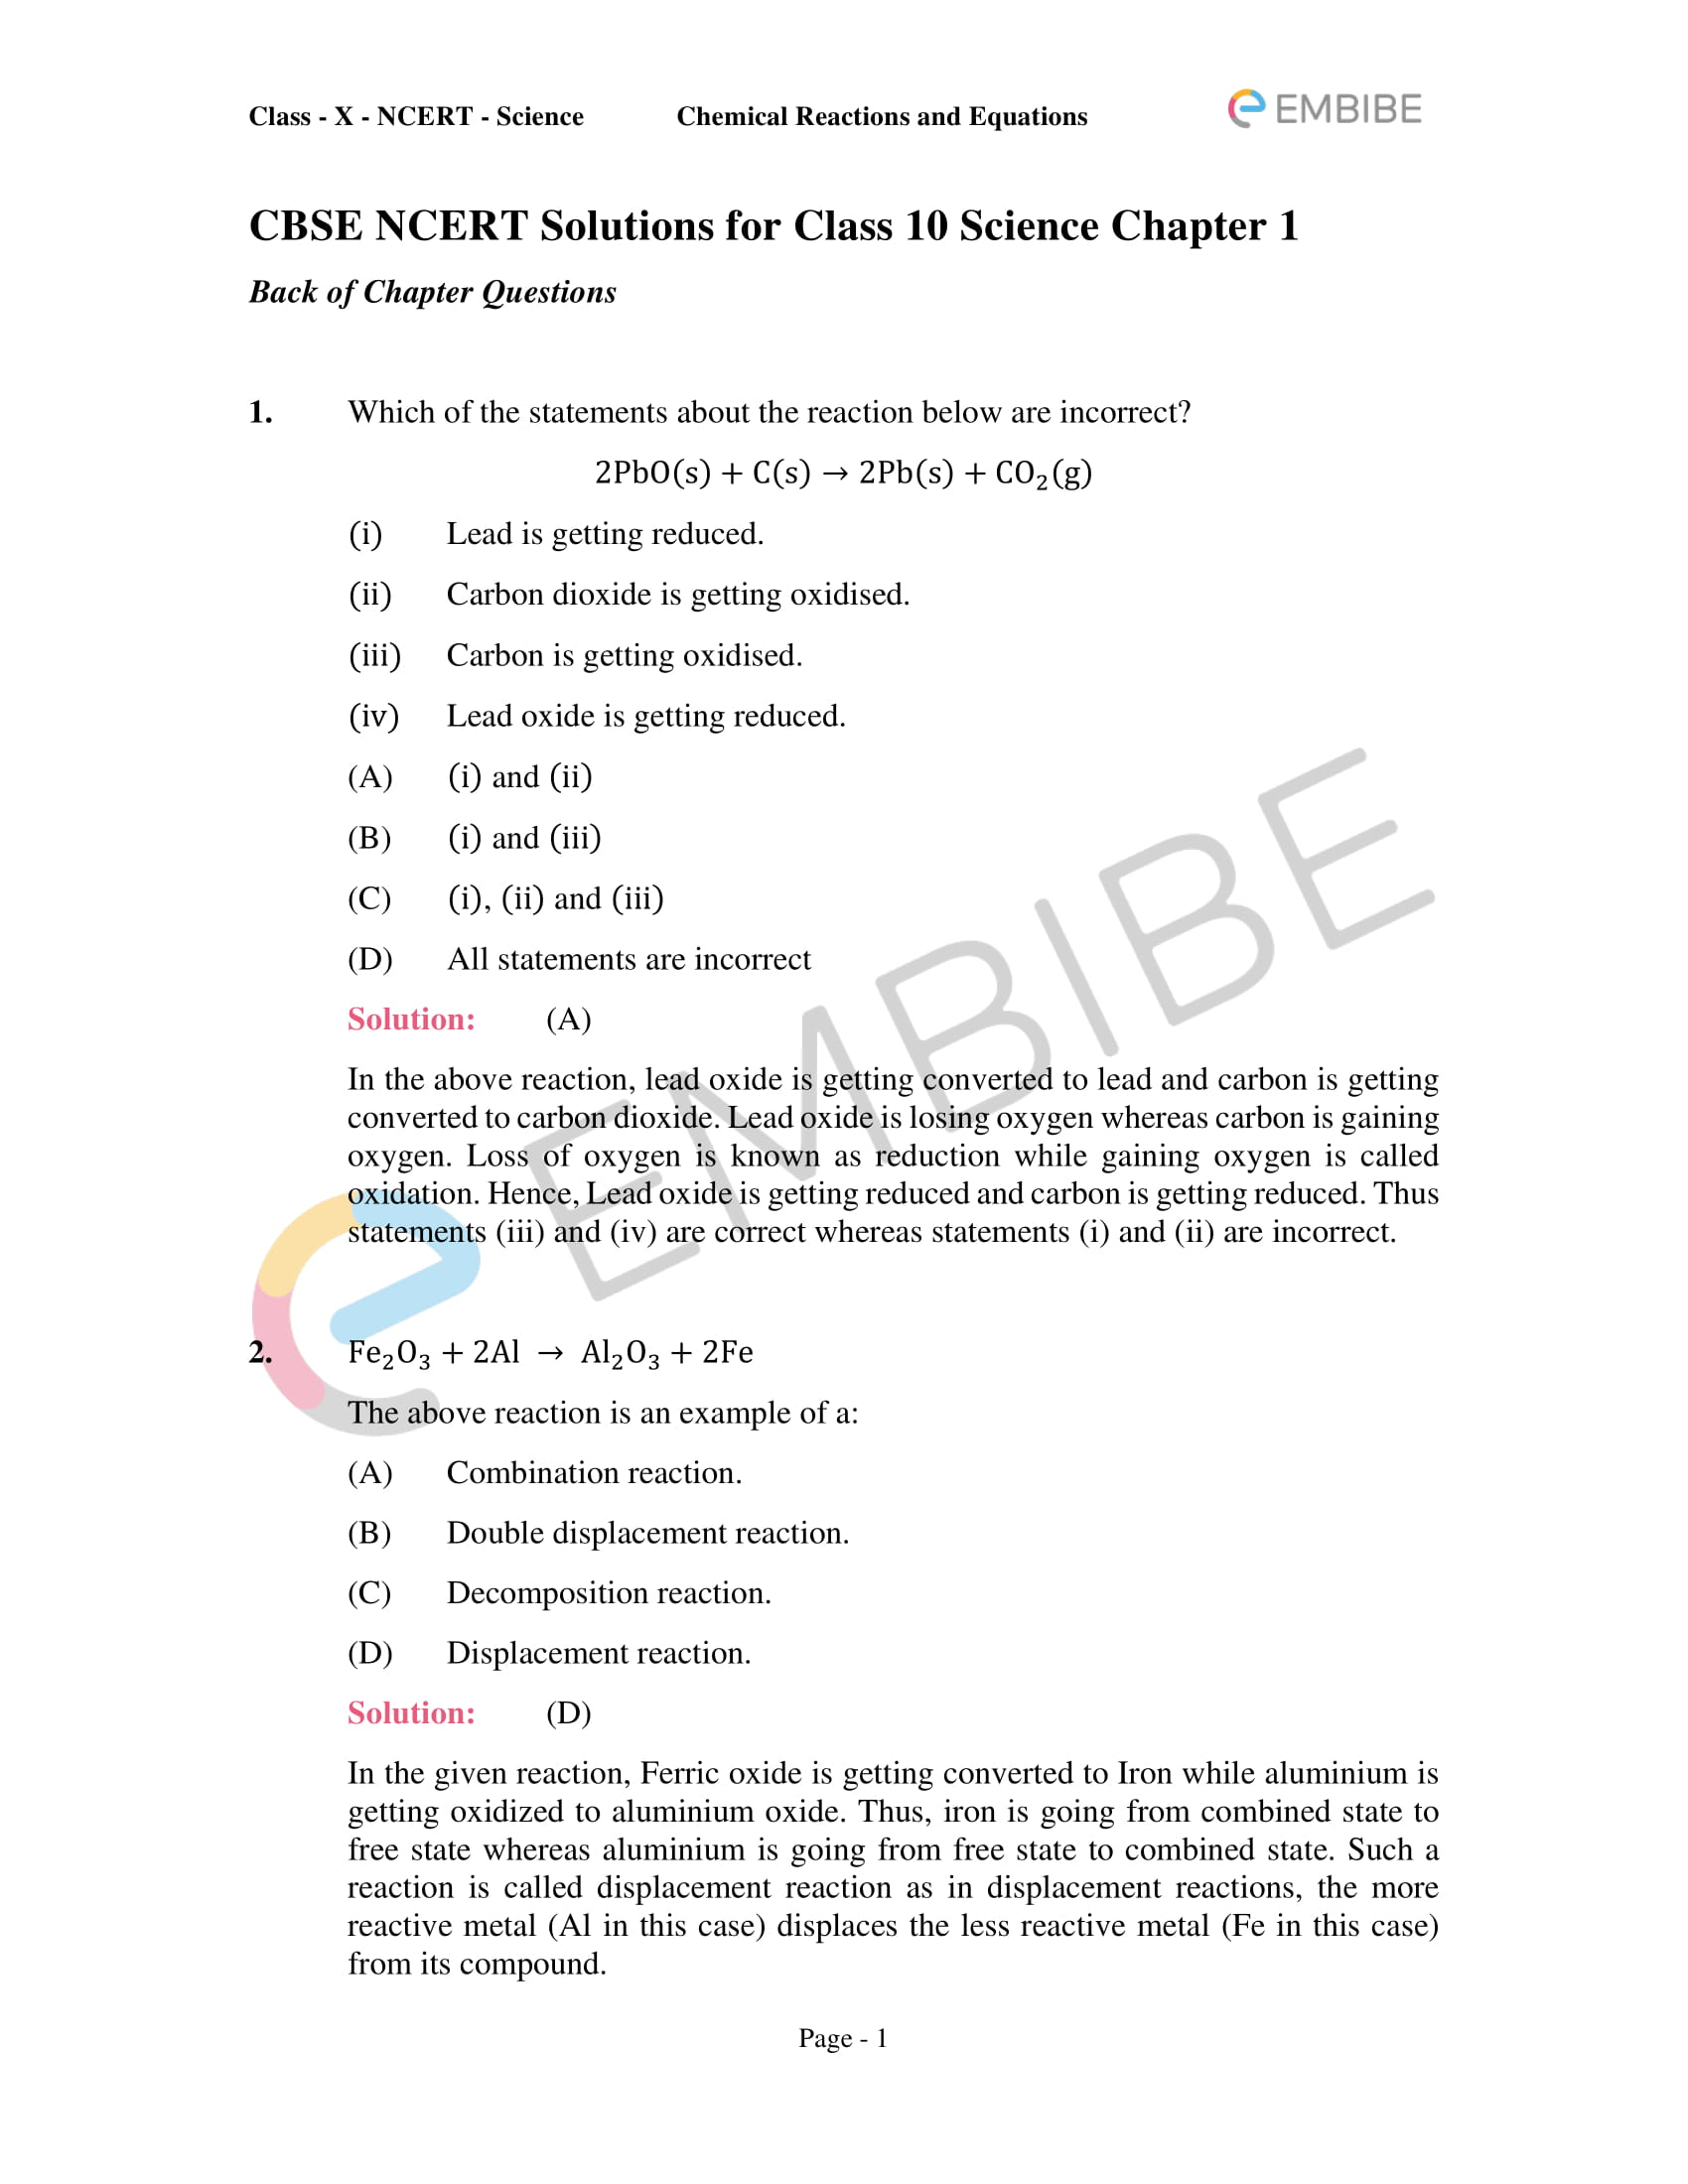 CBSE NCERT Solutions for Class 10 Science Chapter 1: Chemical Reactions And Equations-1